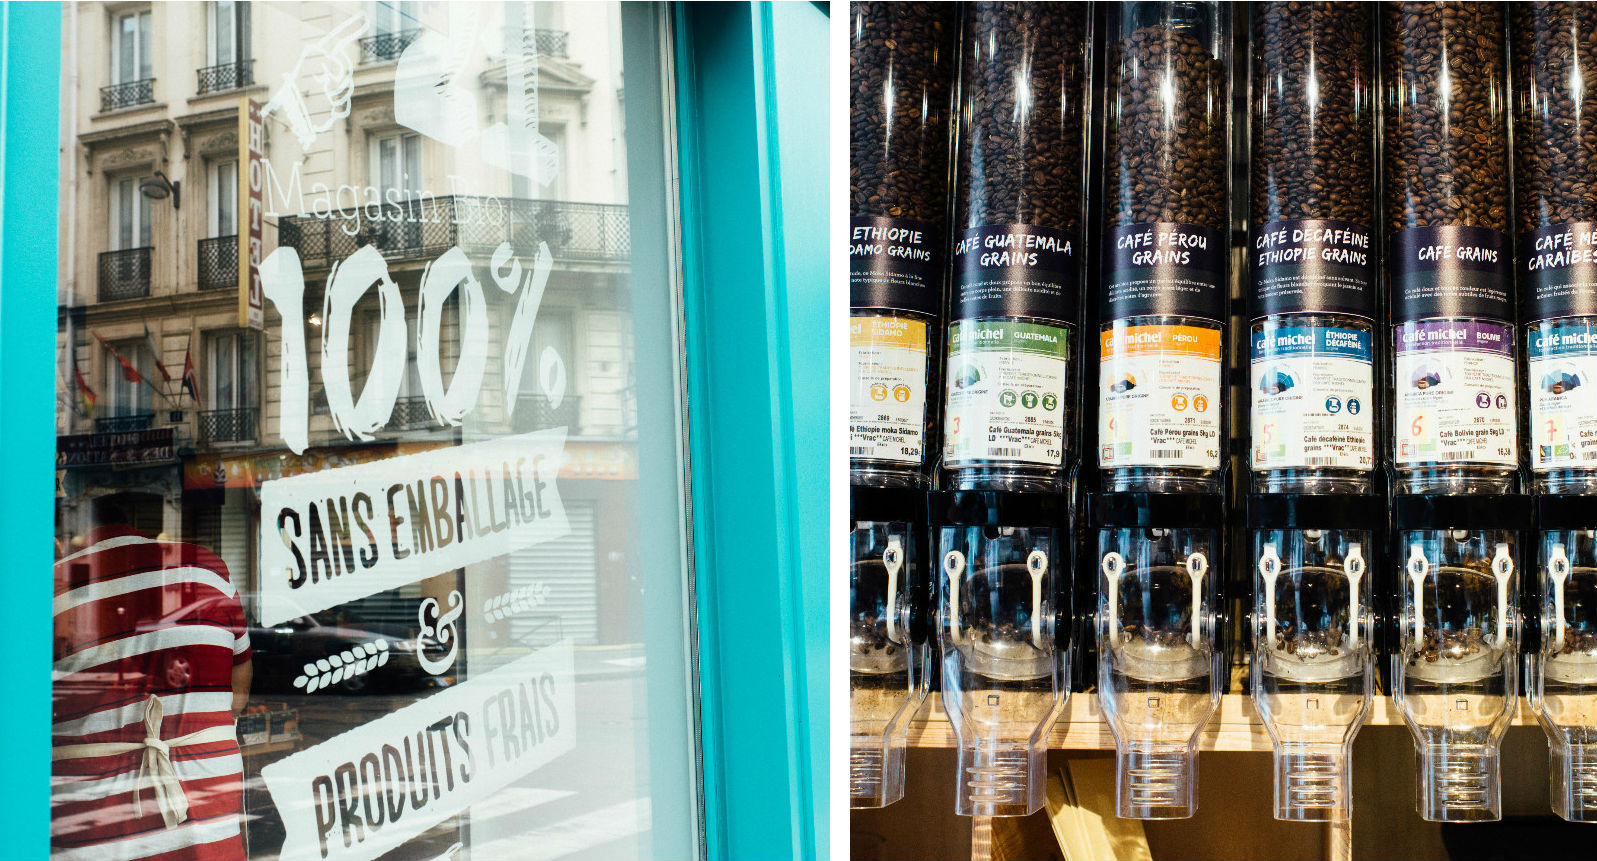 HiP Paris blog. BioCoop 21, Paris' first bag-free organic bulk shop. No wasteful packaging to ruin delicious fair trade coffee.